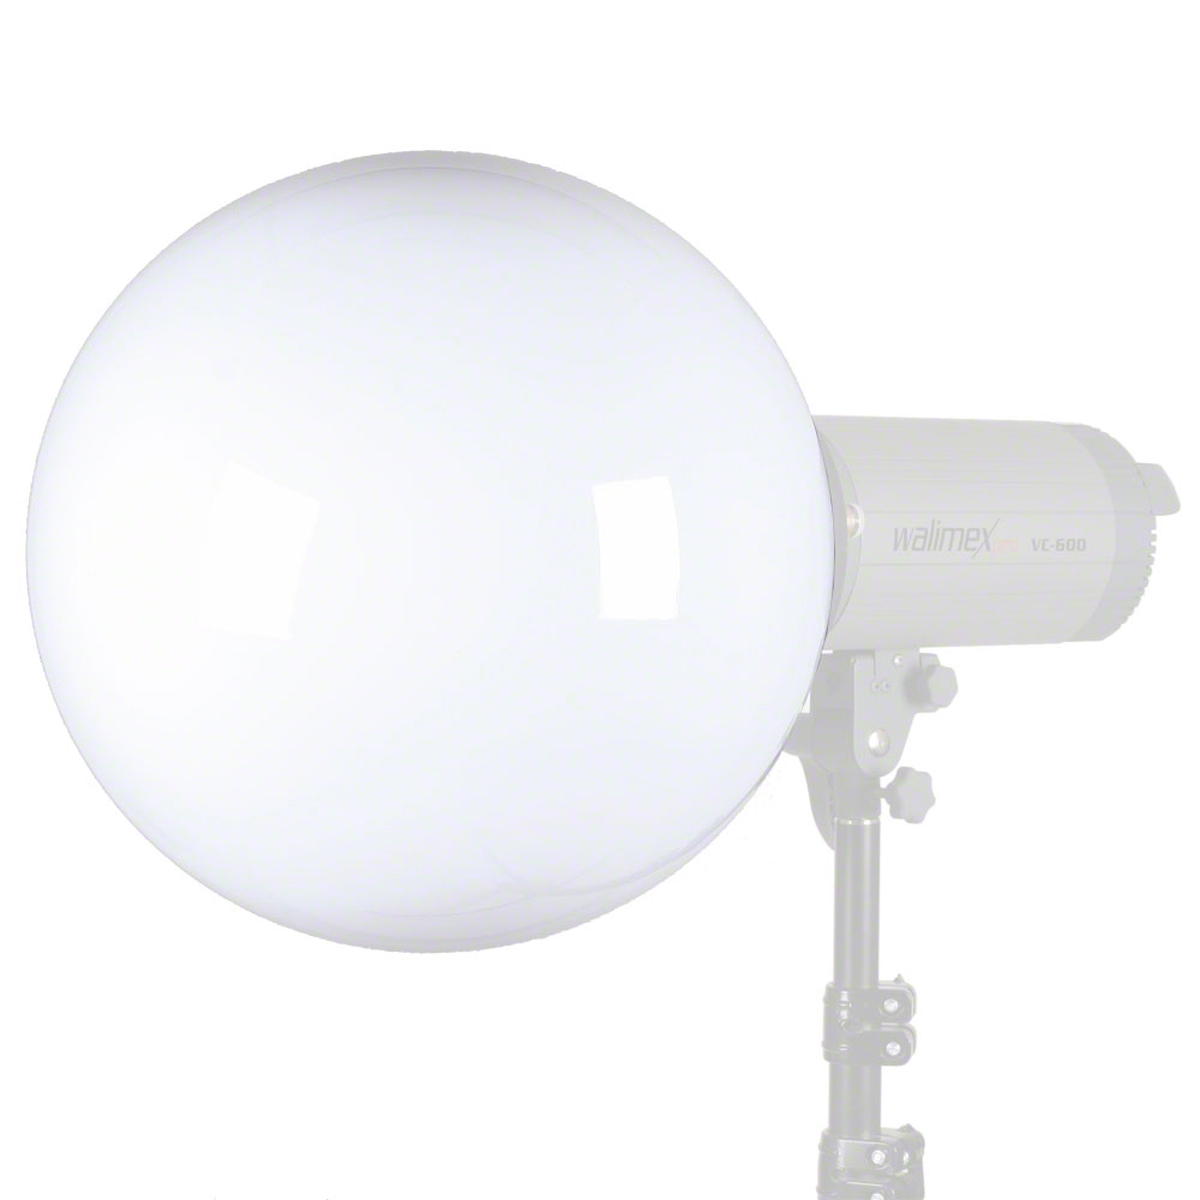 Walimex Universal Spherical Diffuser Electra small